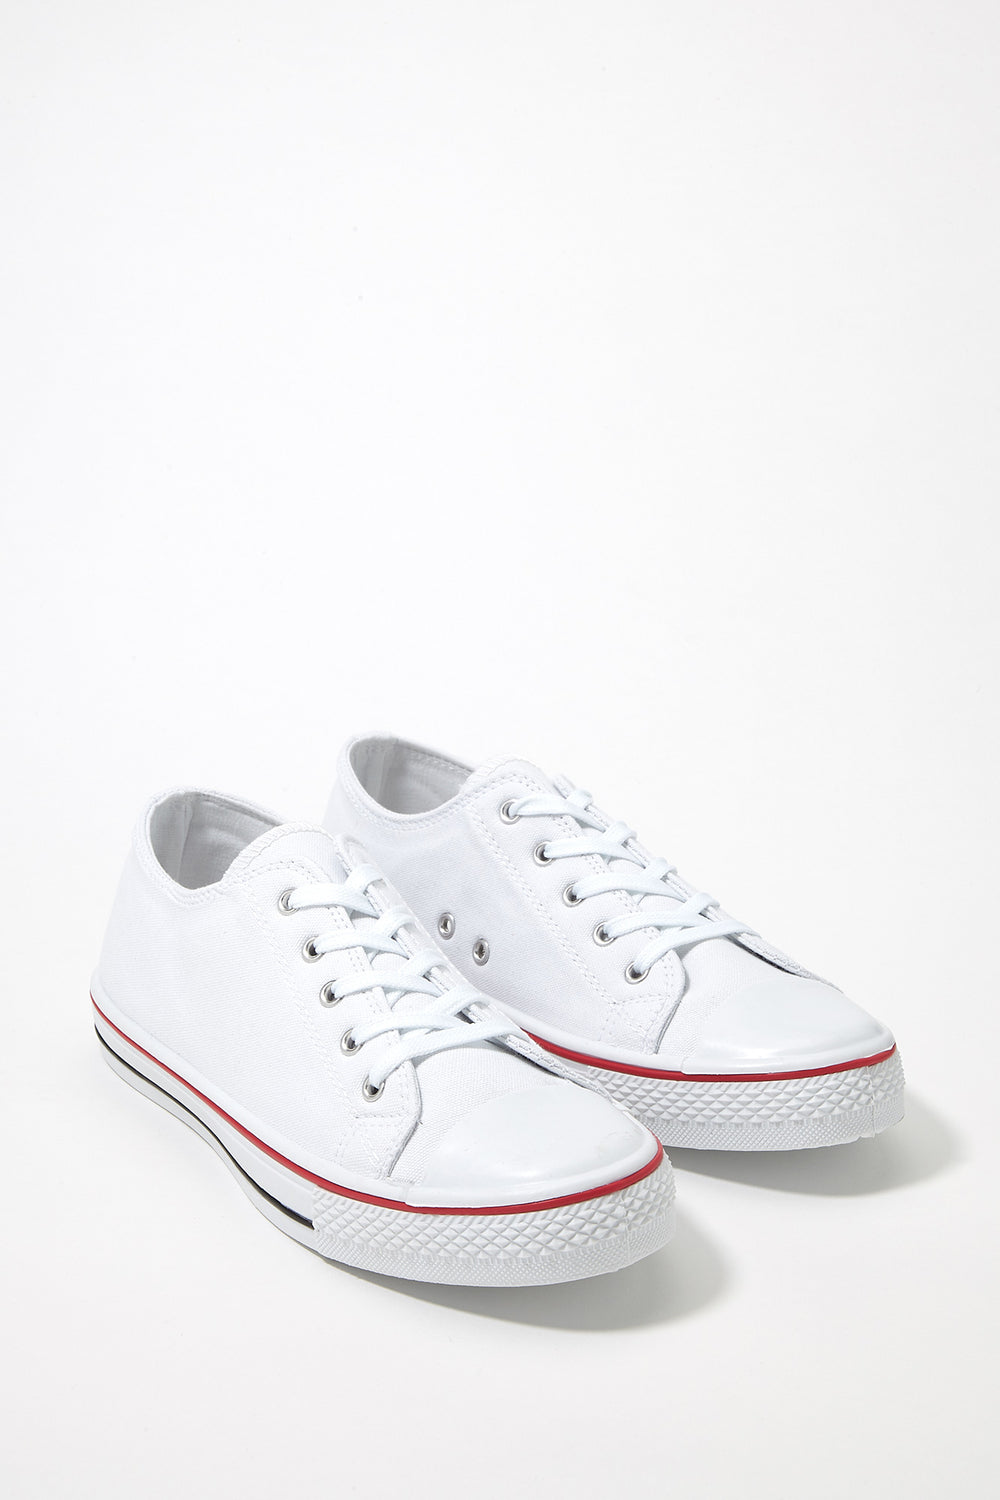 Printed Canvas Lace-Up Sneaker White